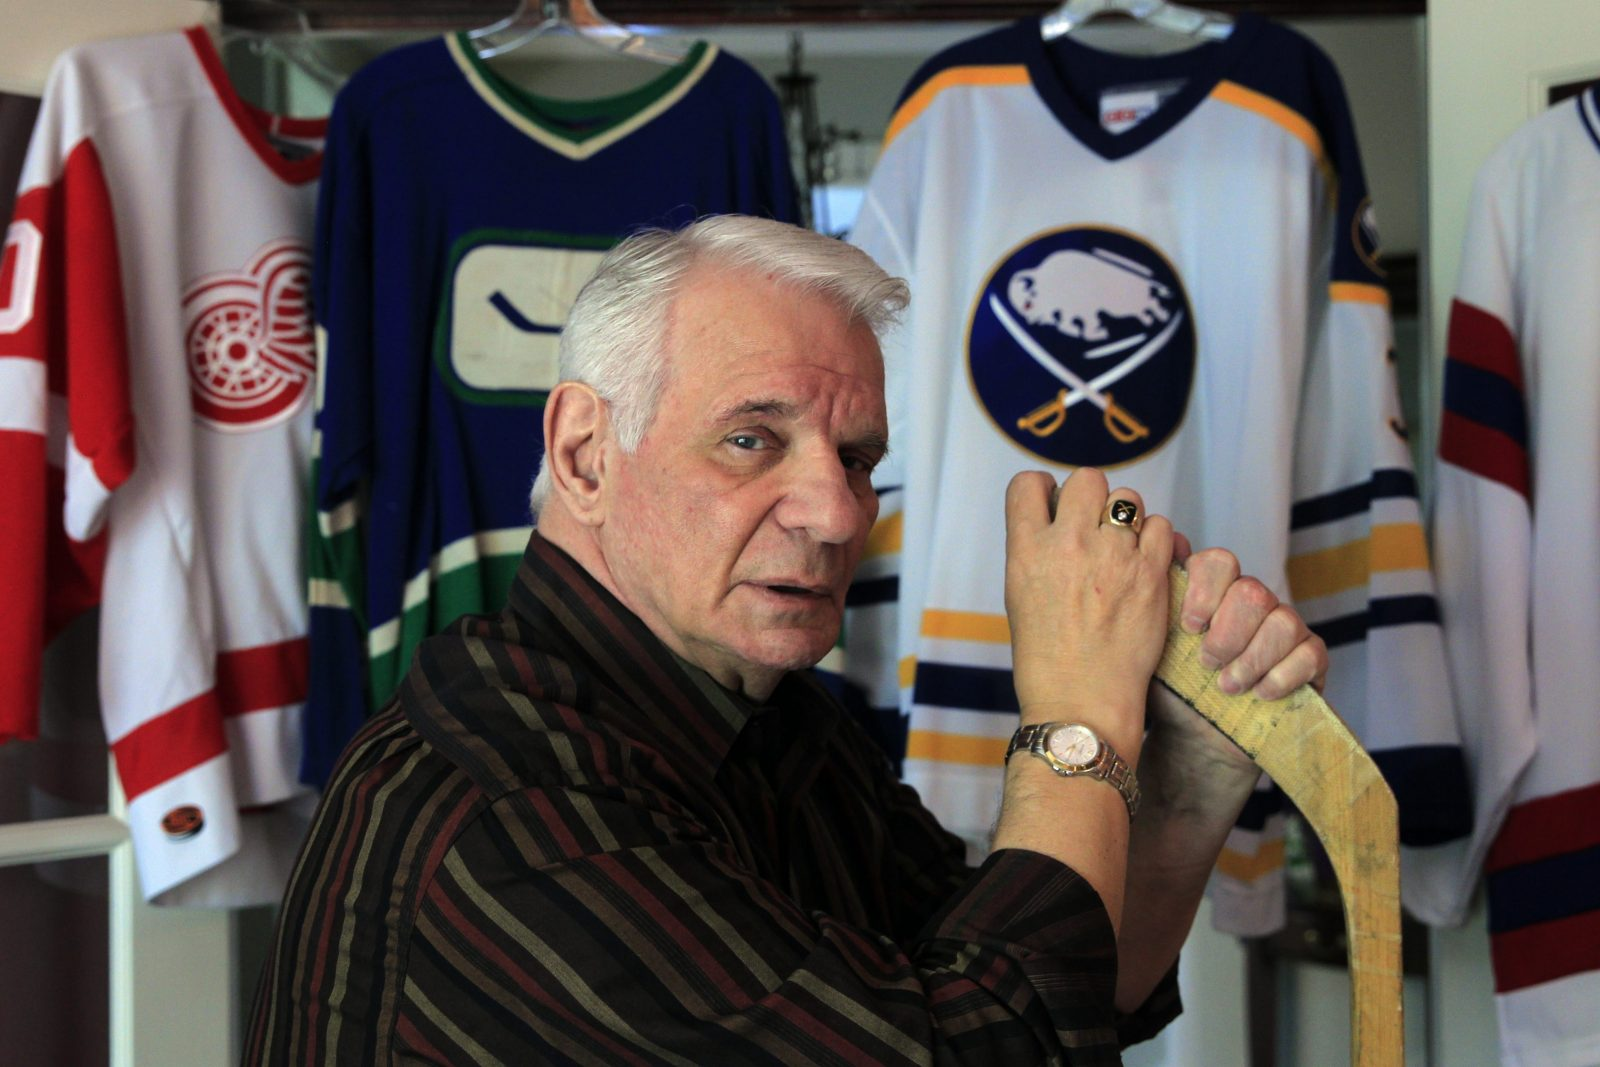 NHL alumni Mike Robitaille is pictured inside his home on Friday, May 20, 2016. Robitaille and 103 other former hockey players are seeking medical monitoring and compensatory damages from the National Hockey League.